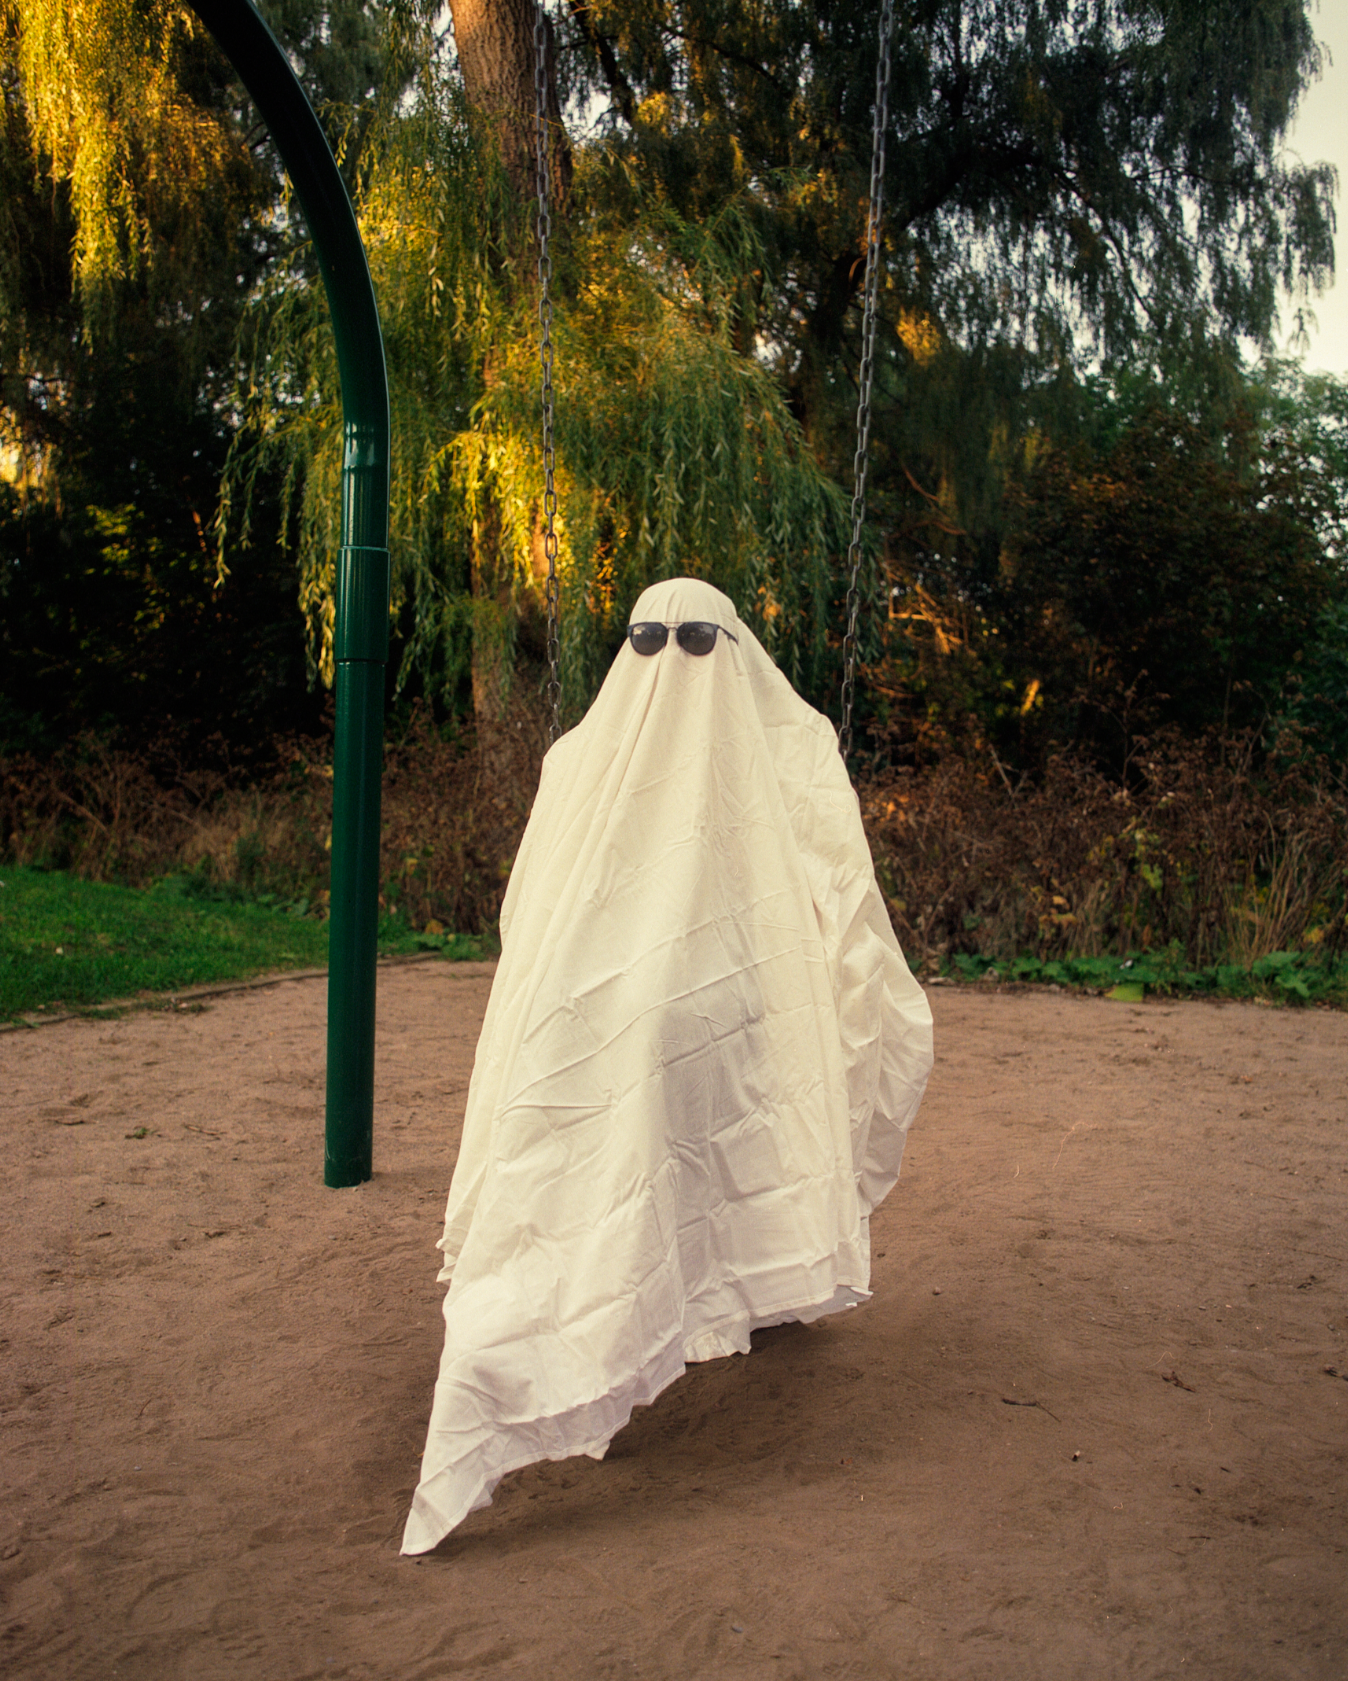 Jay Medeiros - Ghost on the Swing